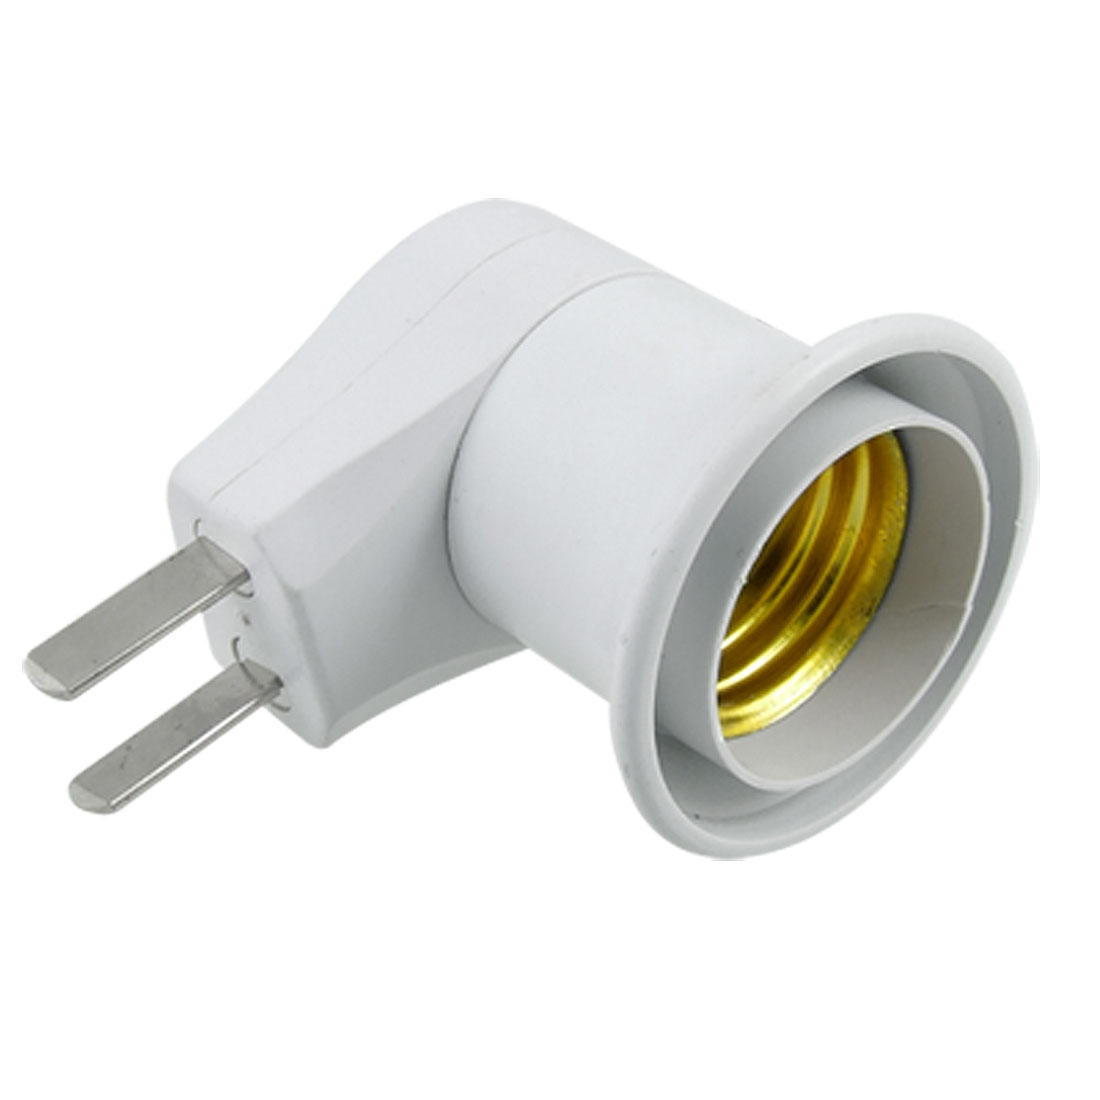 US Plug to E27 Lamp Holder Wall Switch AC 220V